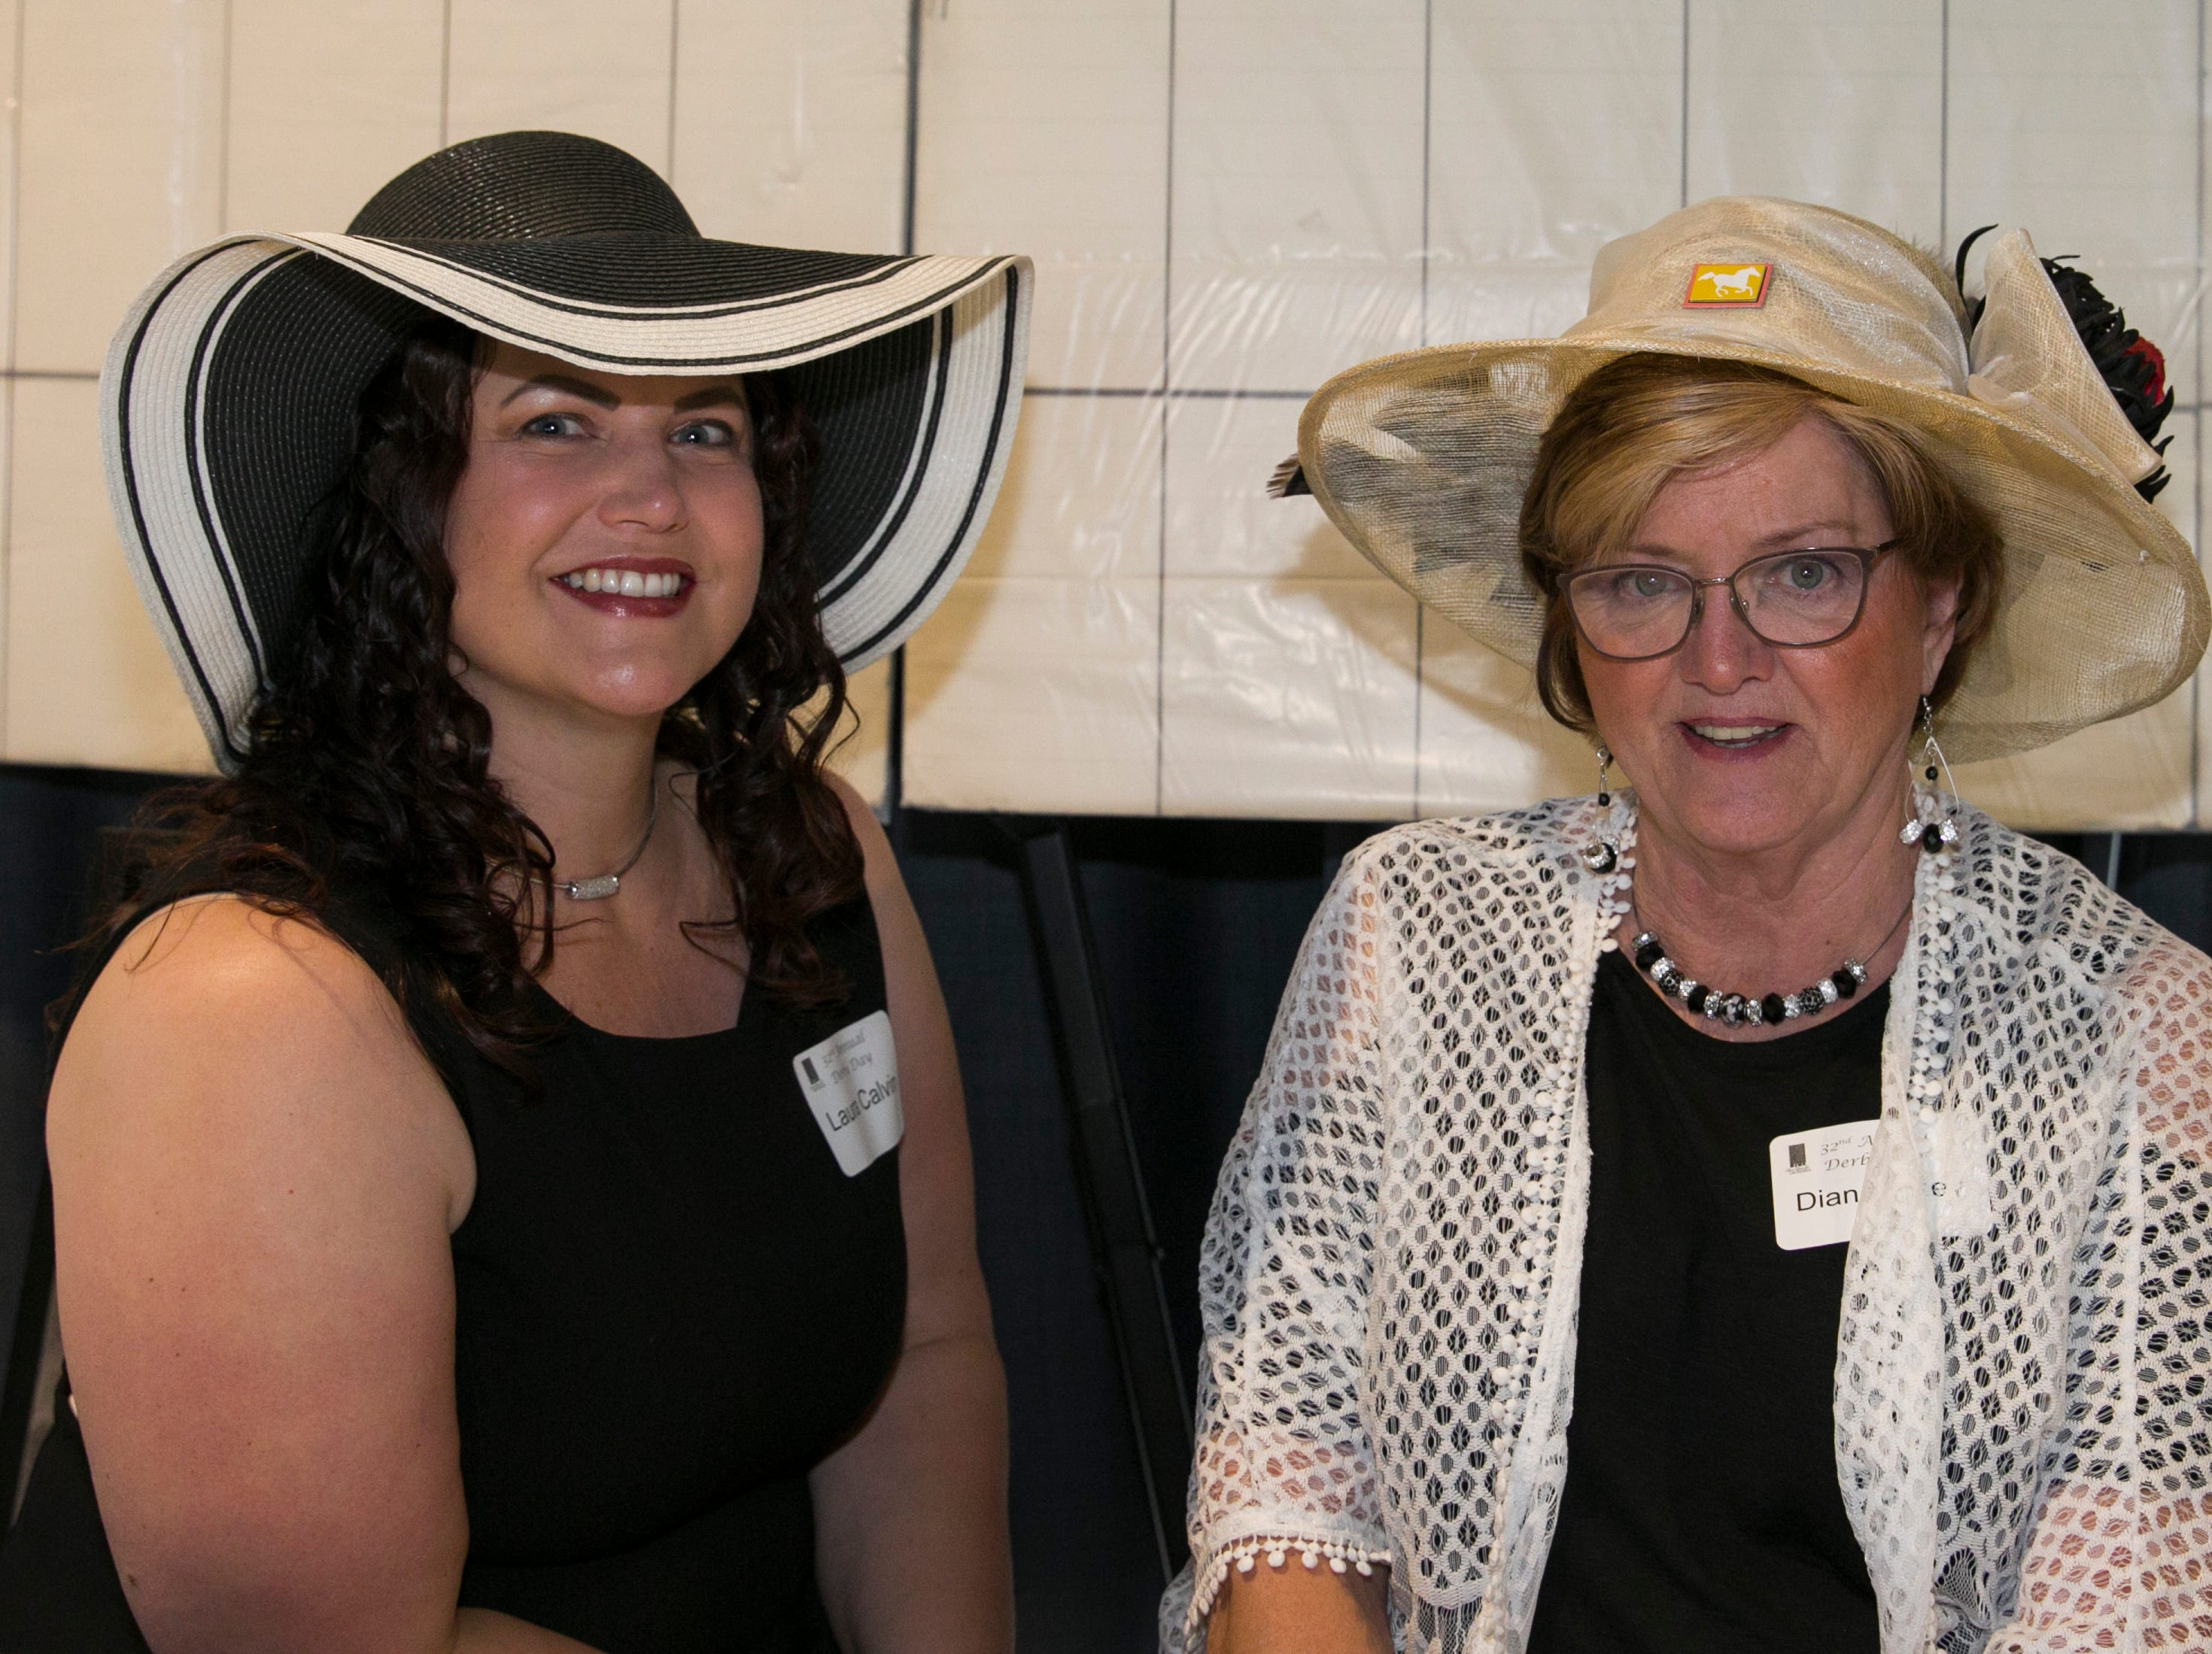 Laura Calvin and Diana Foley during the Derby Day fundraiser for the Reno Chamber Orchestra at the Renaissance Reno on Saturday, May 4, 2019.